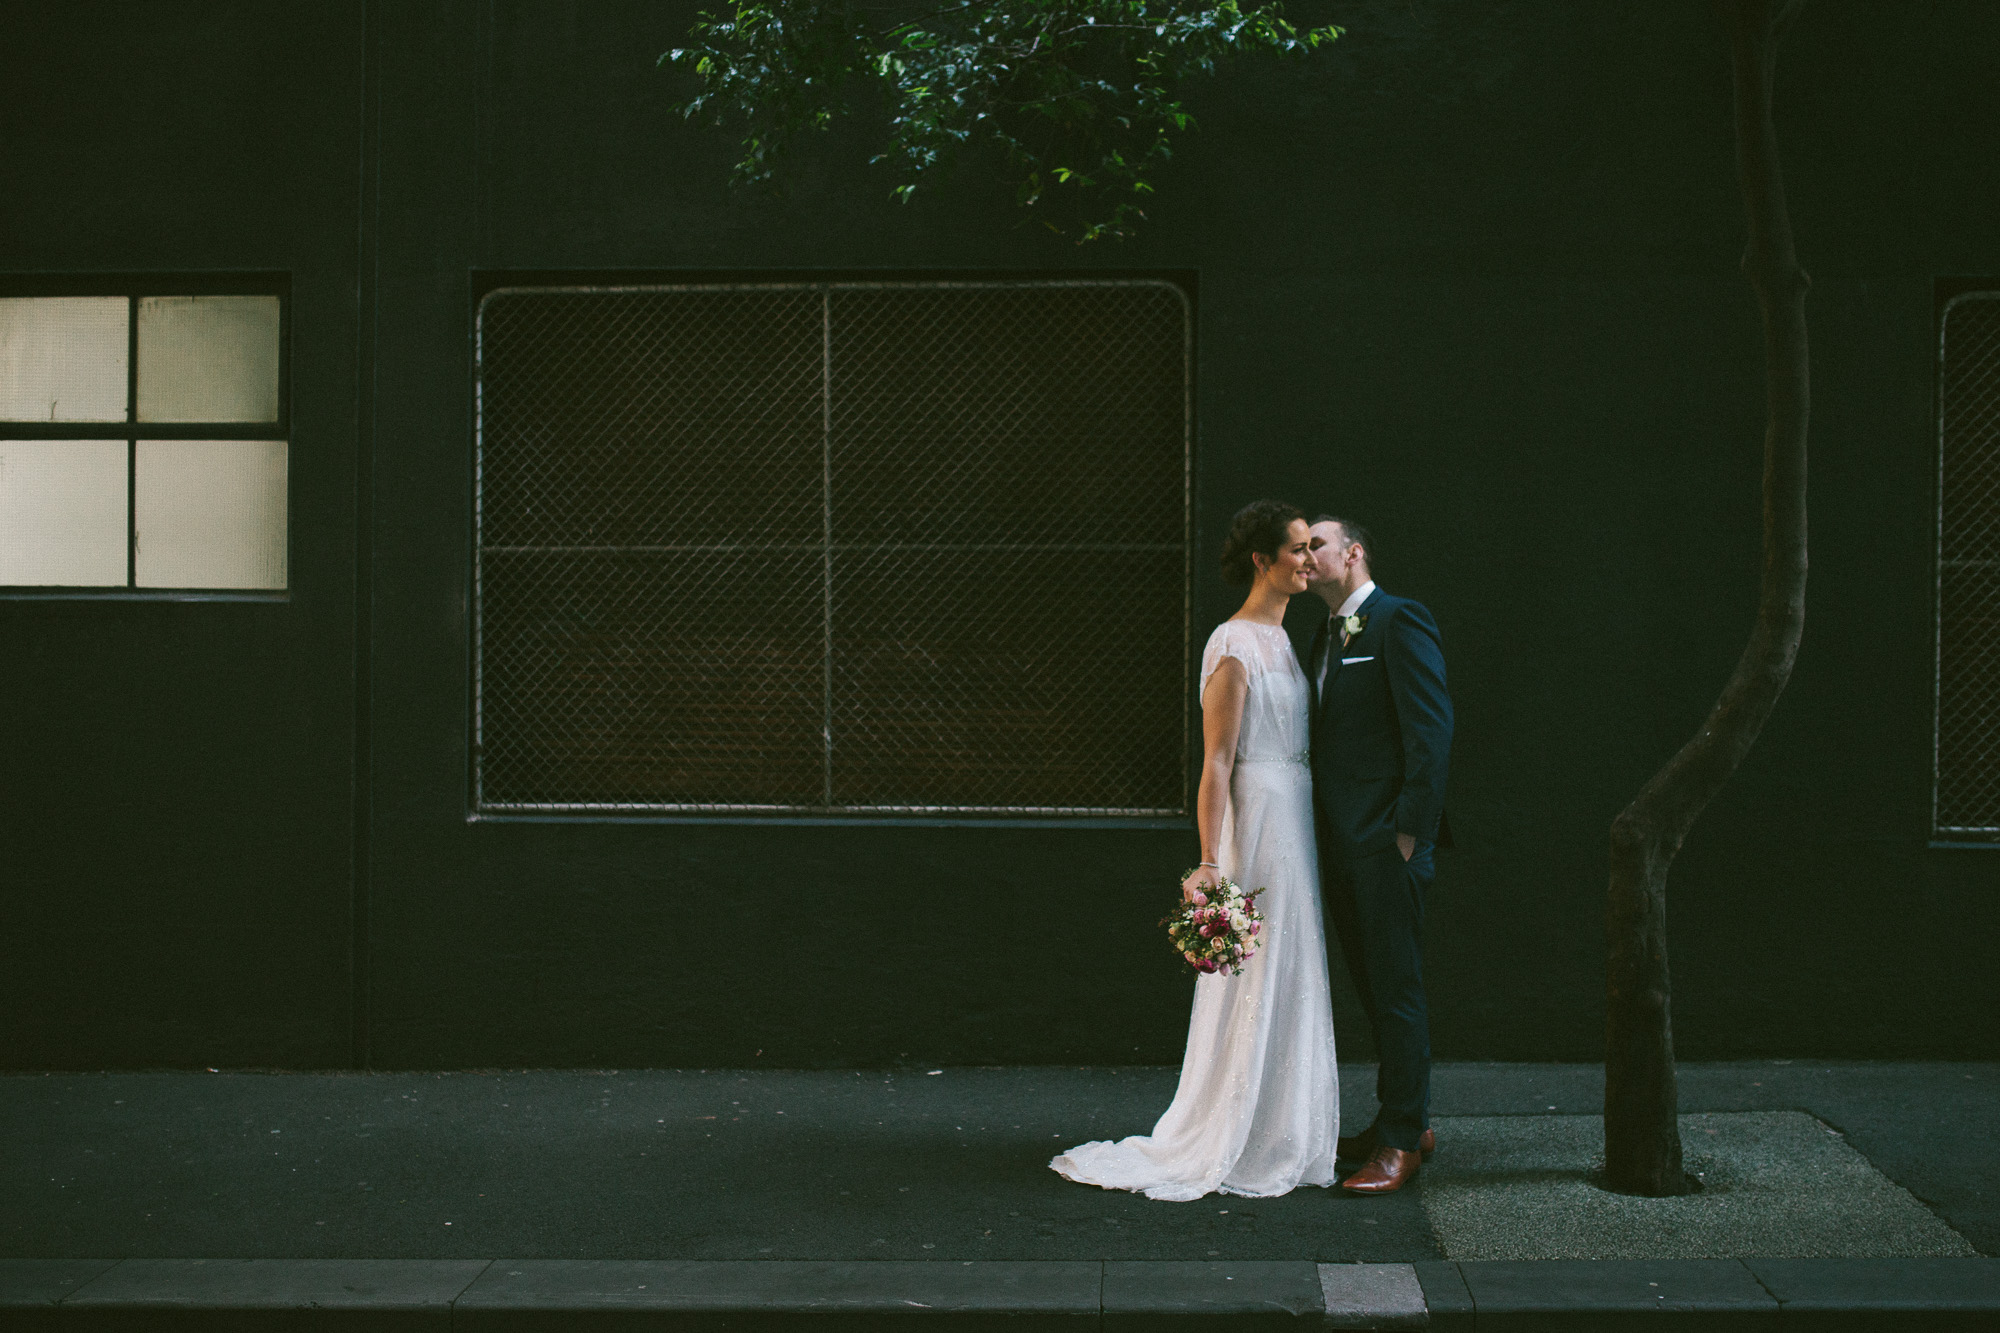 Jason-Charlotte-Melbourne-Quirky-Urban-Alternative-Wedding-Photography-39